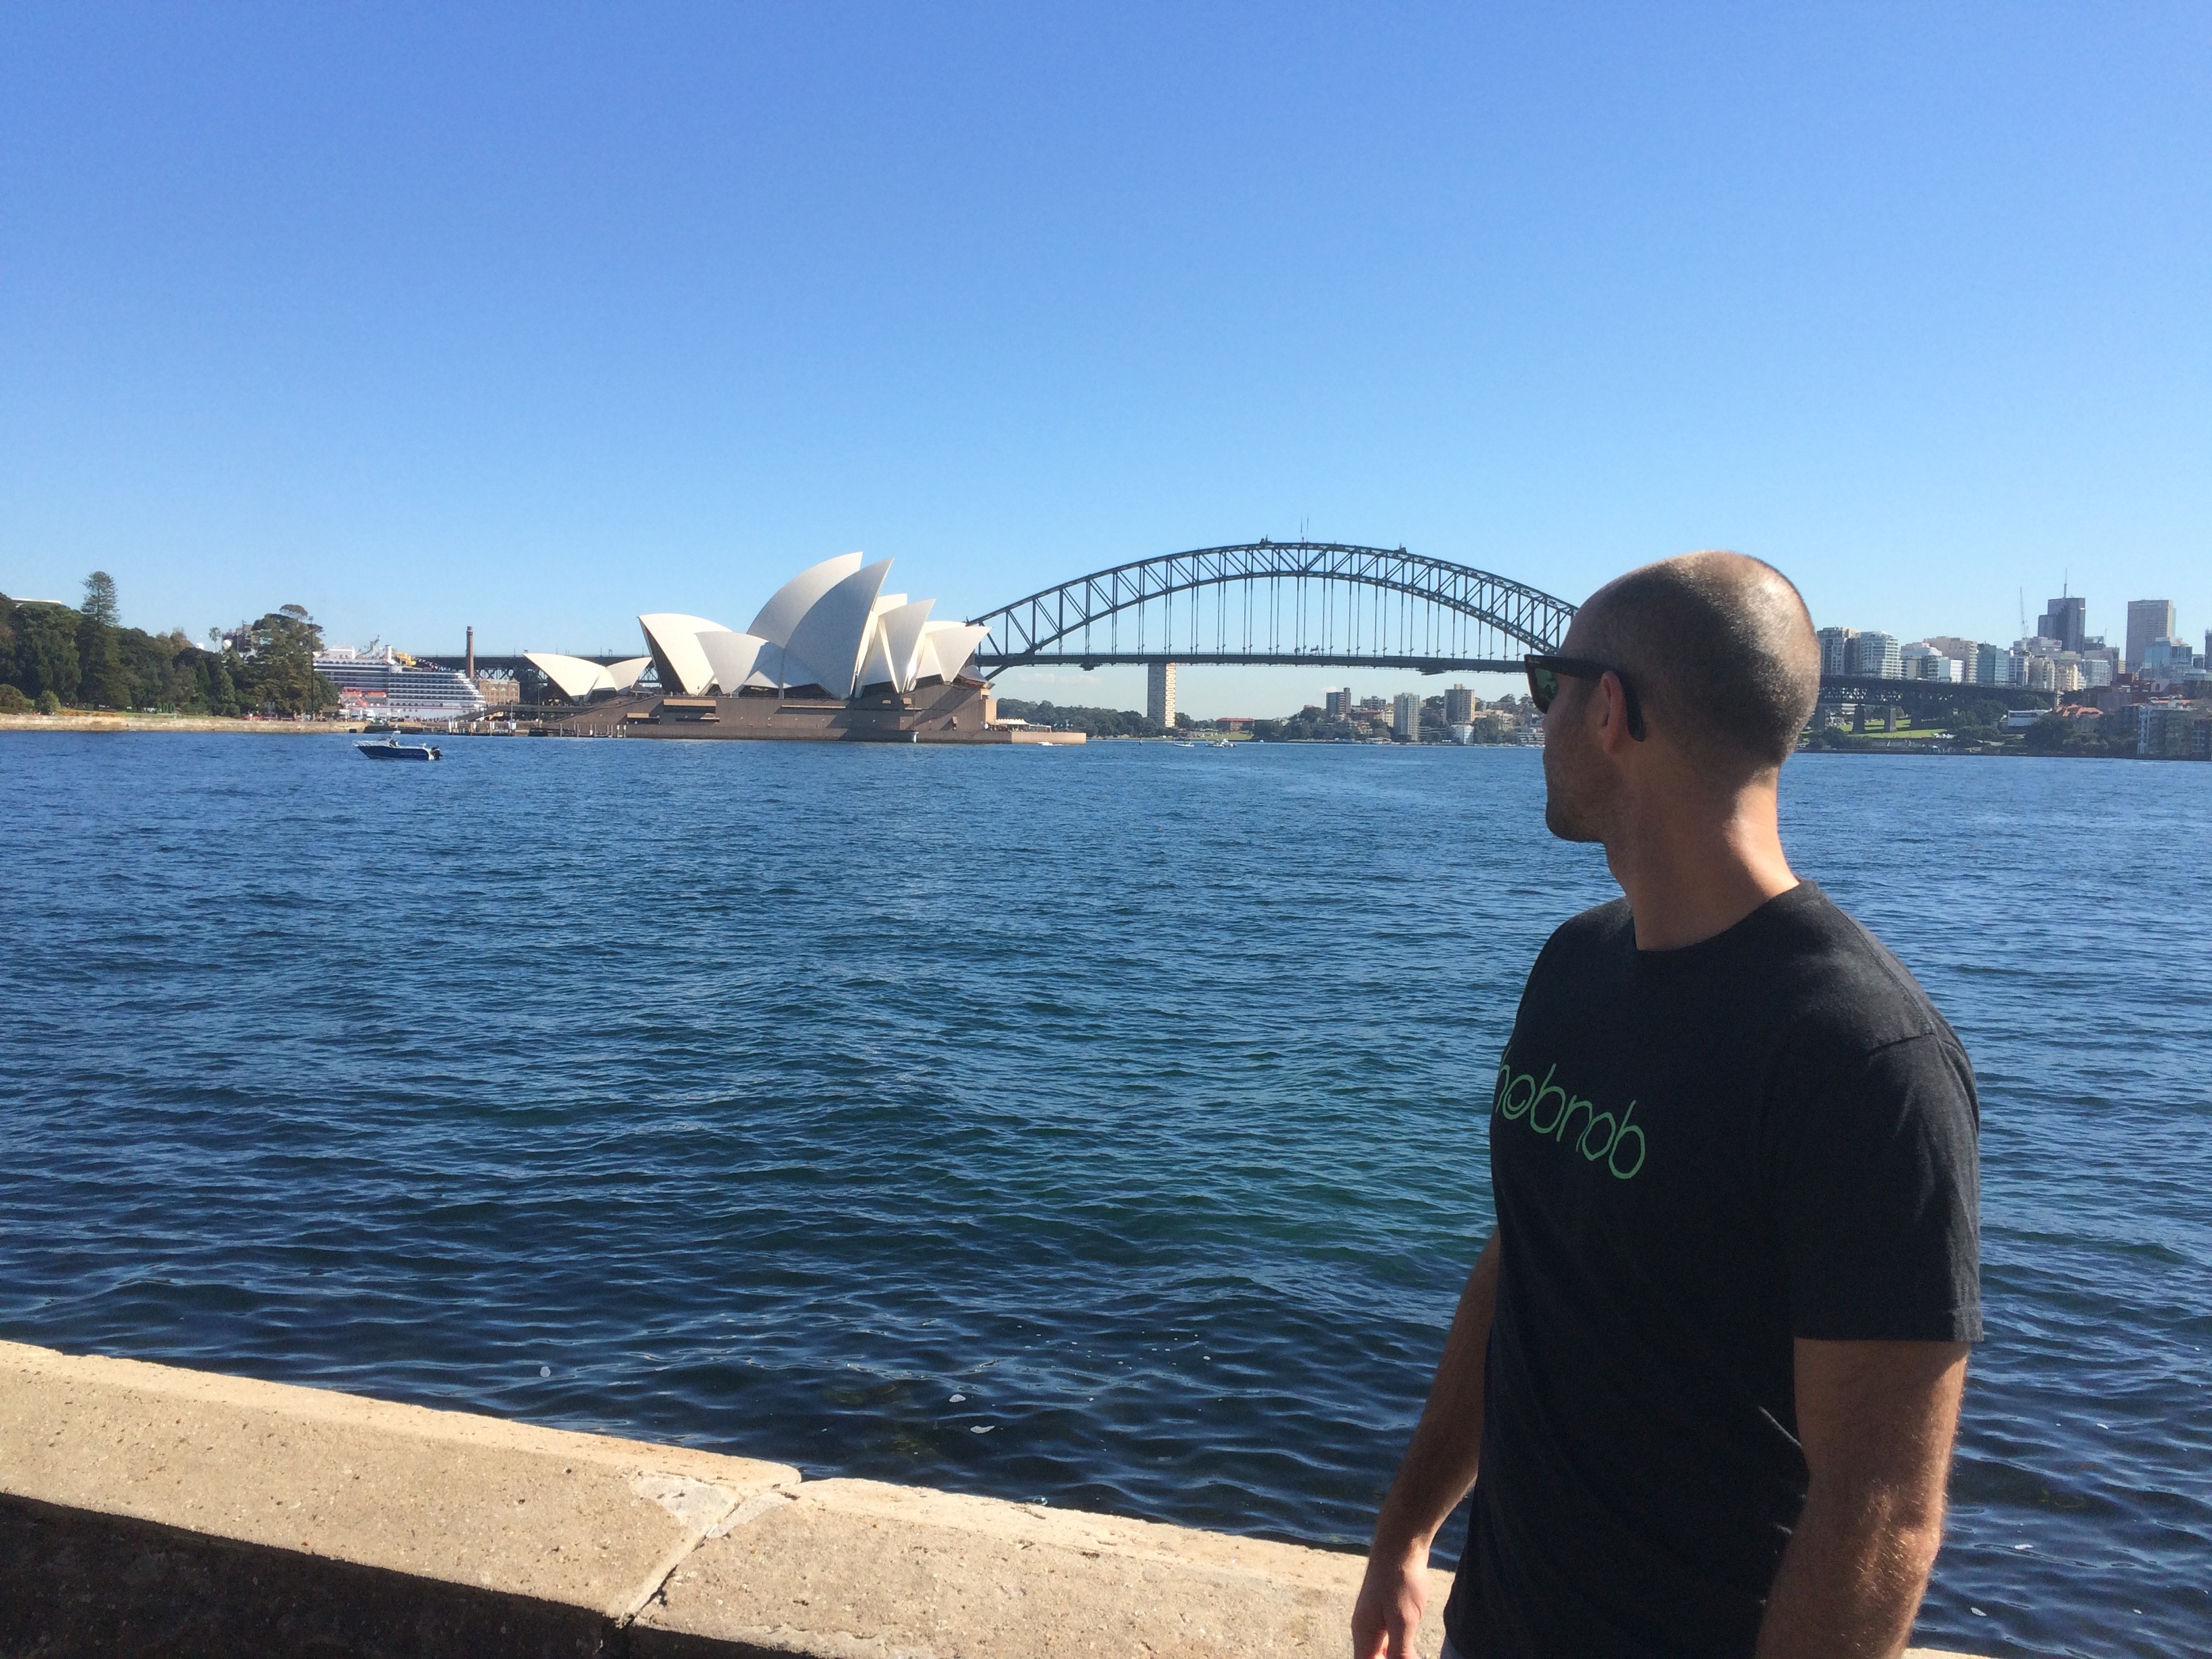 Sydney, Australia: My Trip in Ten Photos